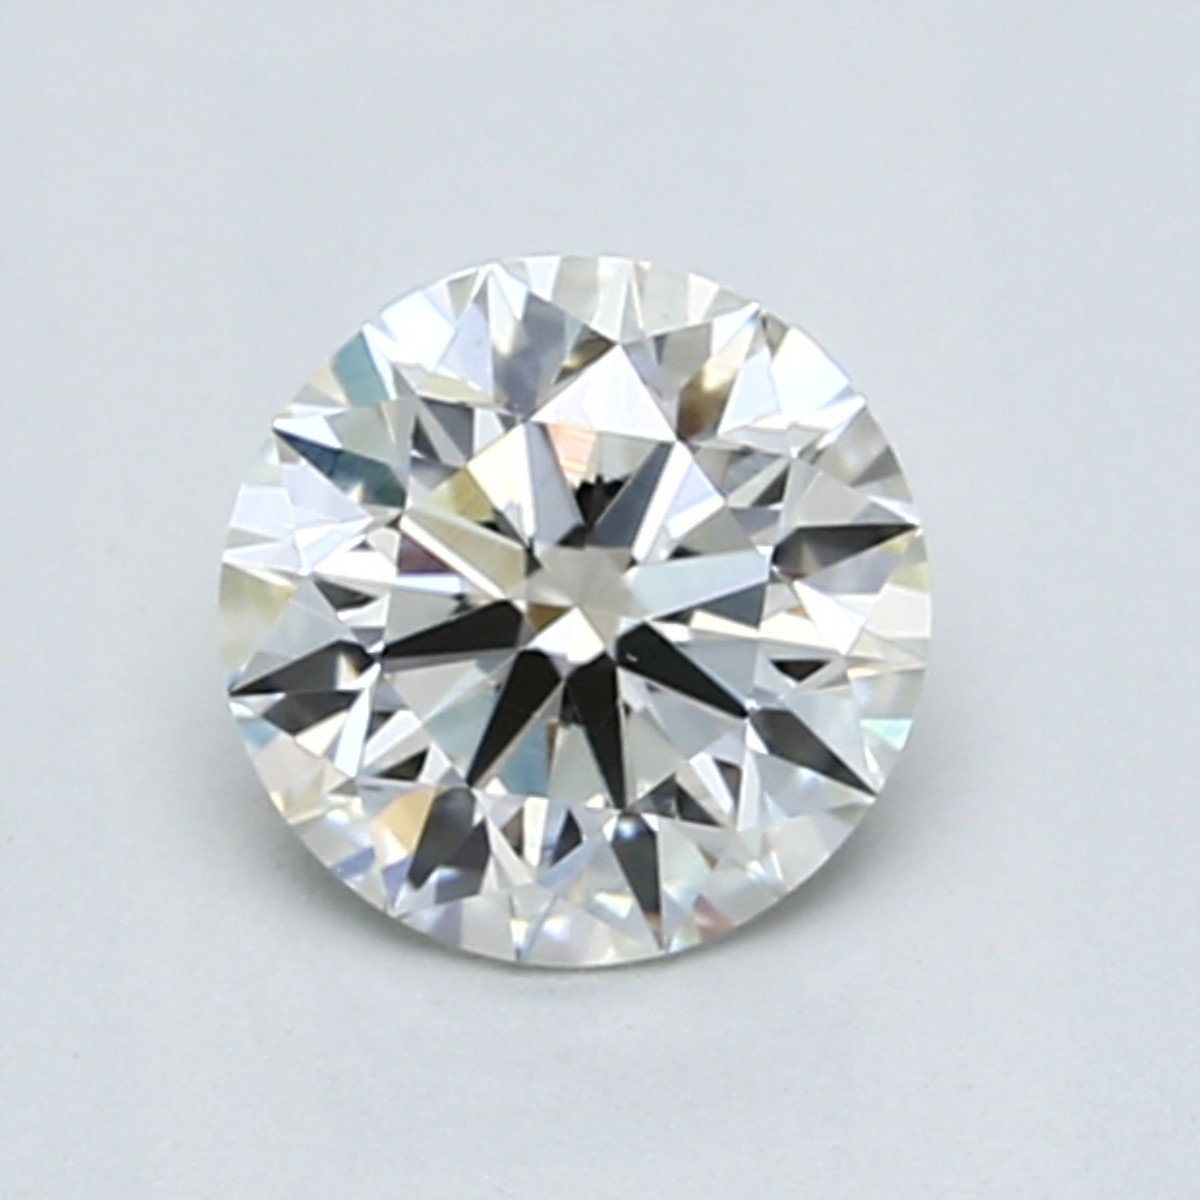 1 Carat J Color Diamond with None Fluorescence